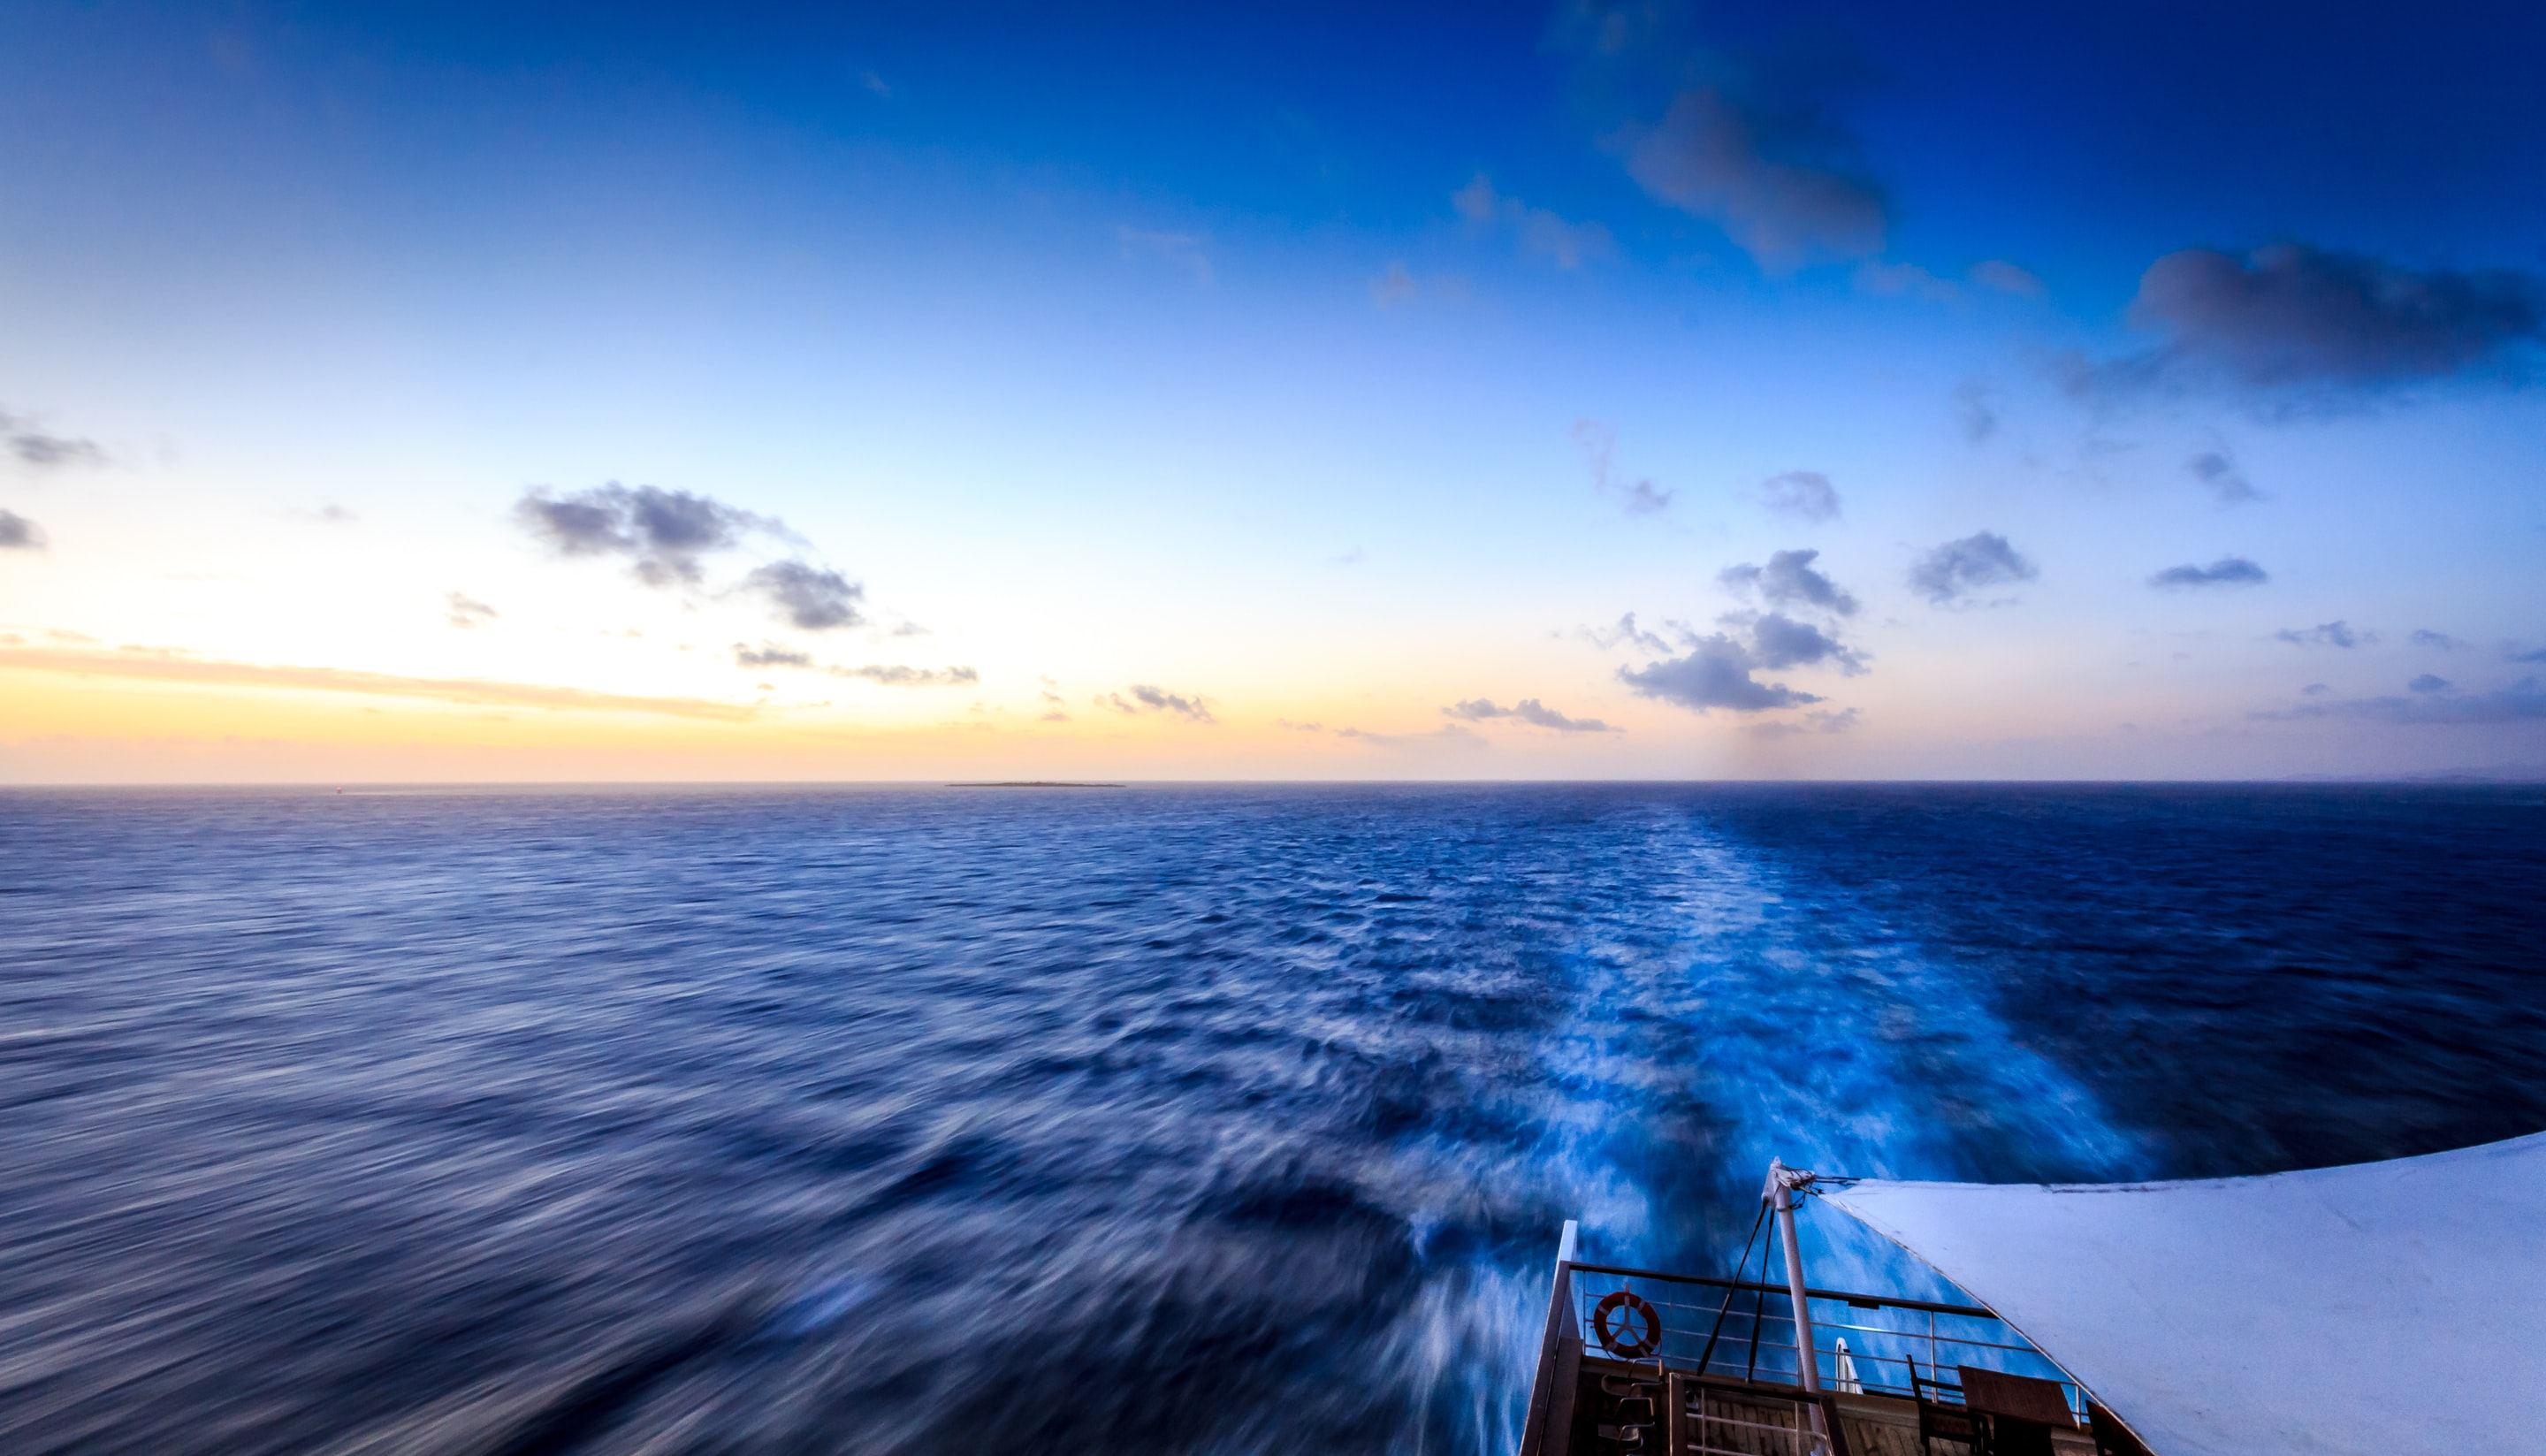 A view from the stern of a boat on its wake in deep blue ocean